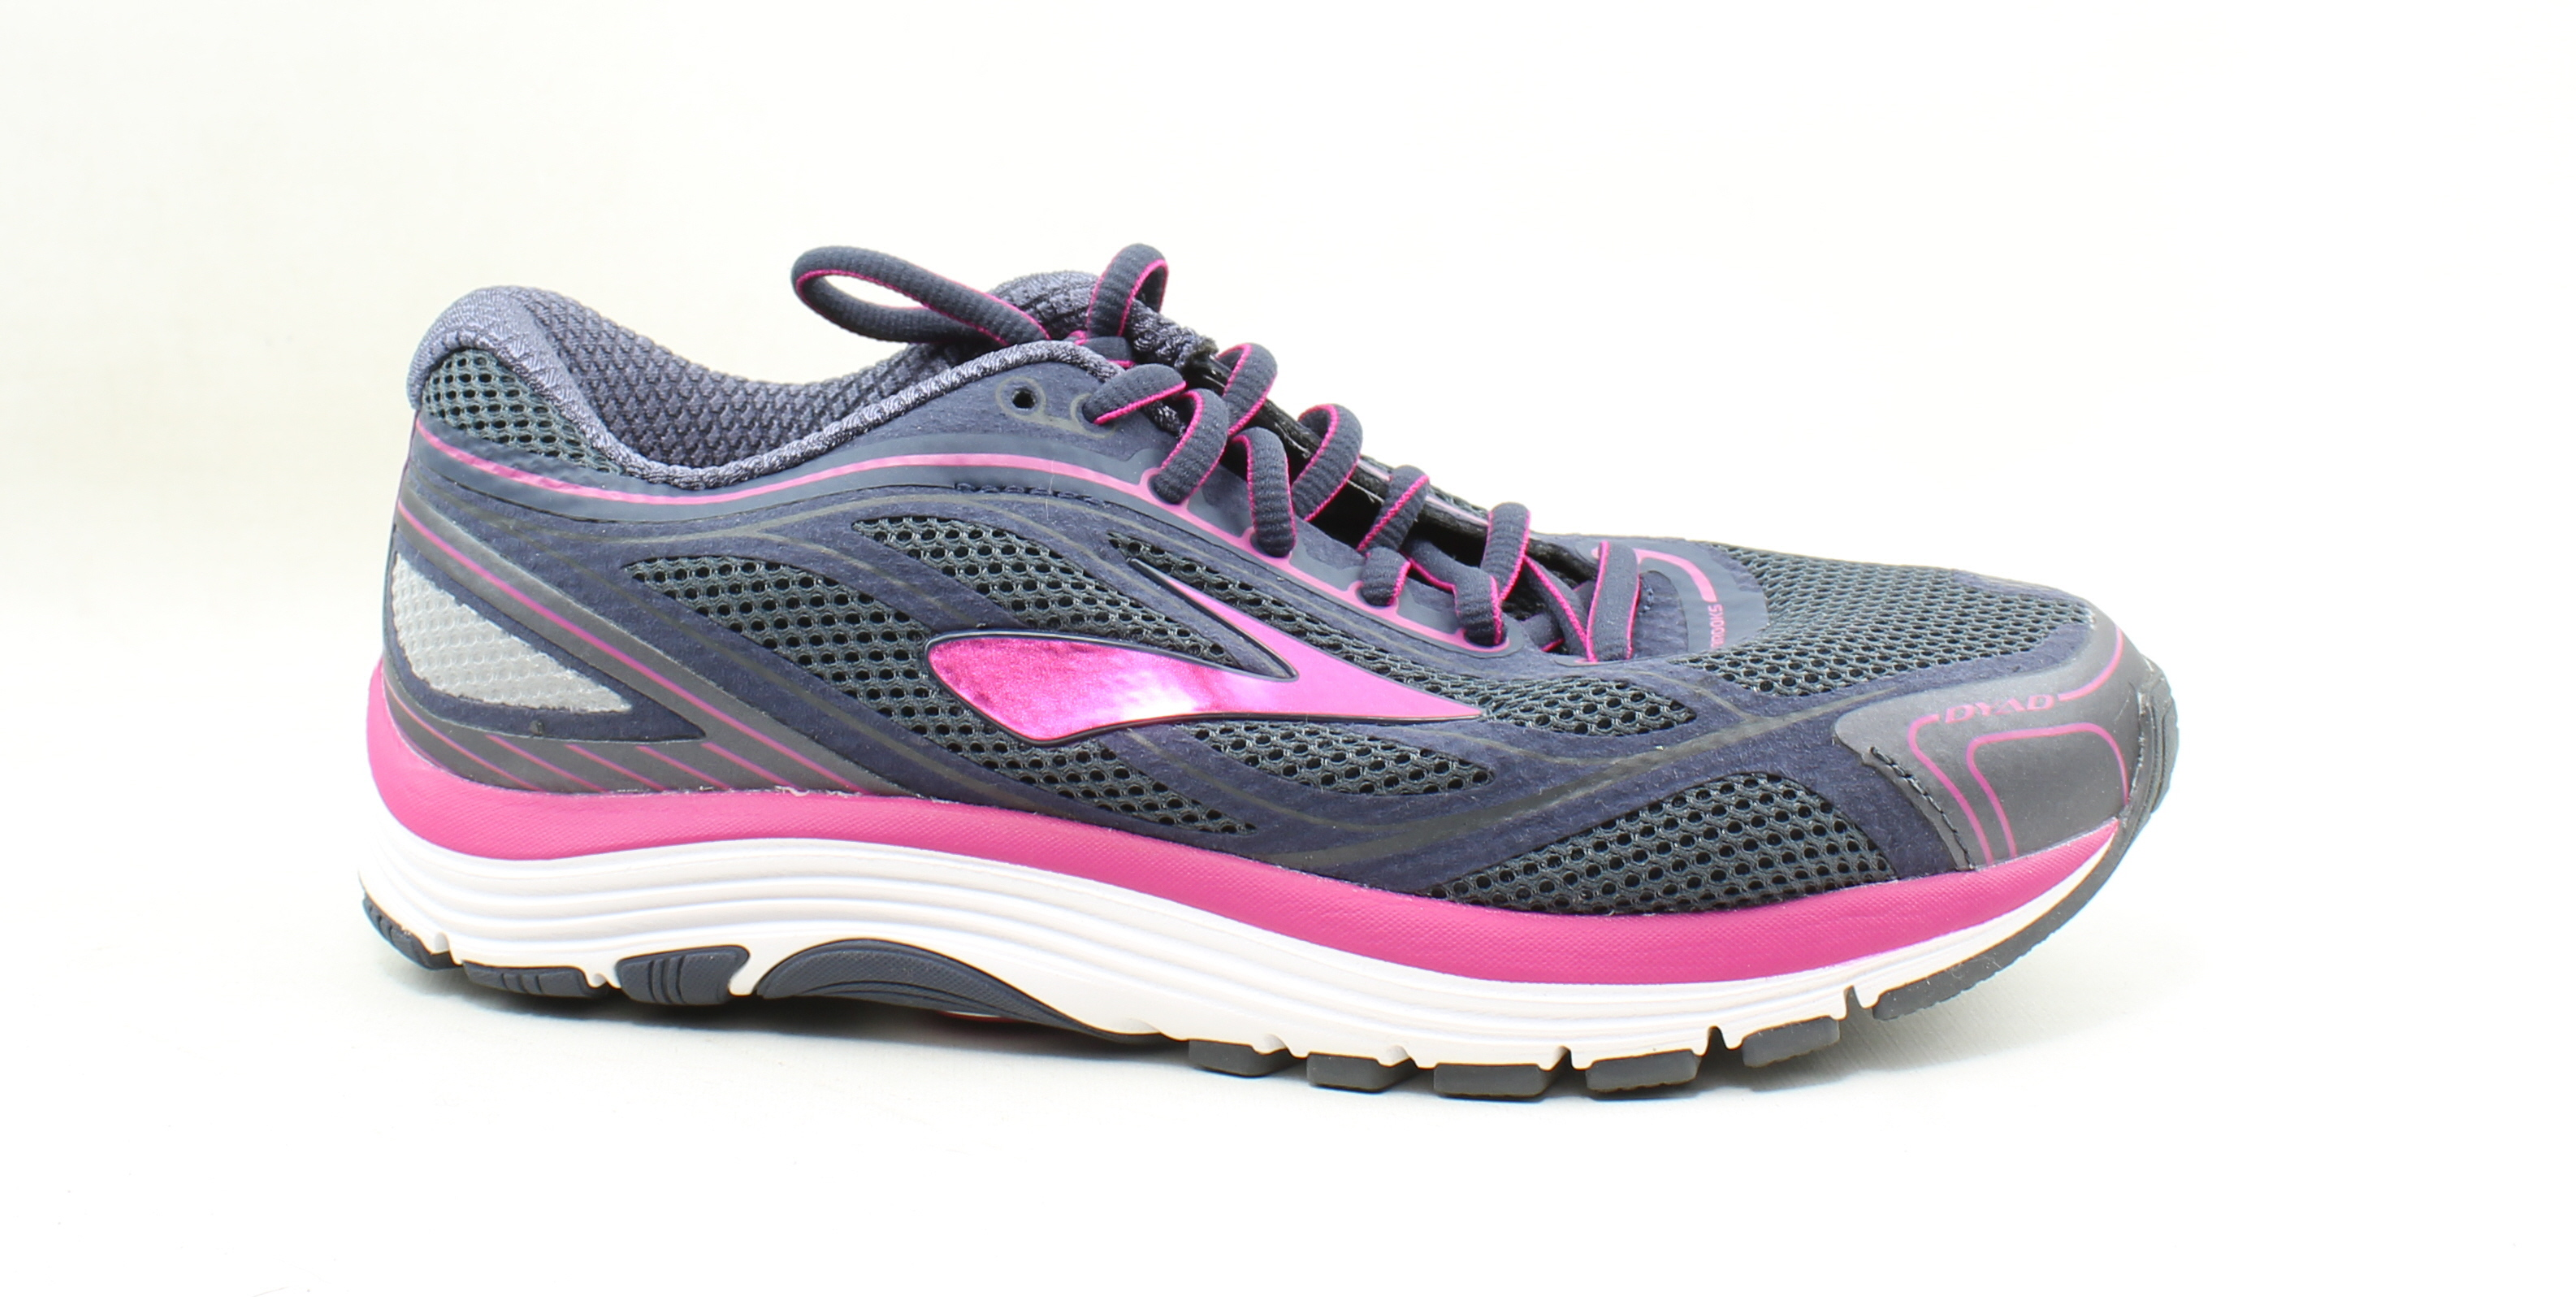 5c801c8a142f8 Details about Brooks Womens Dyad 9 Blue Running Shoes Size 7.5 (248502)